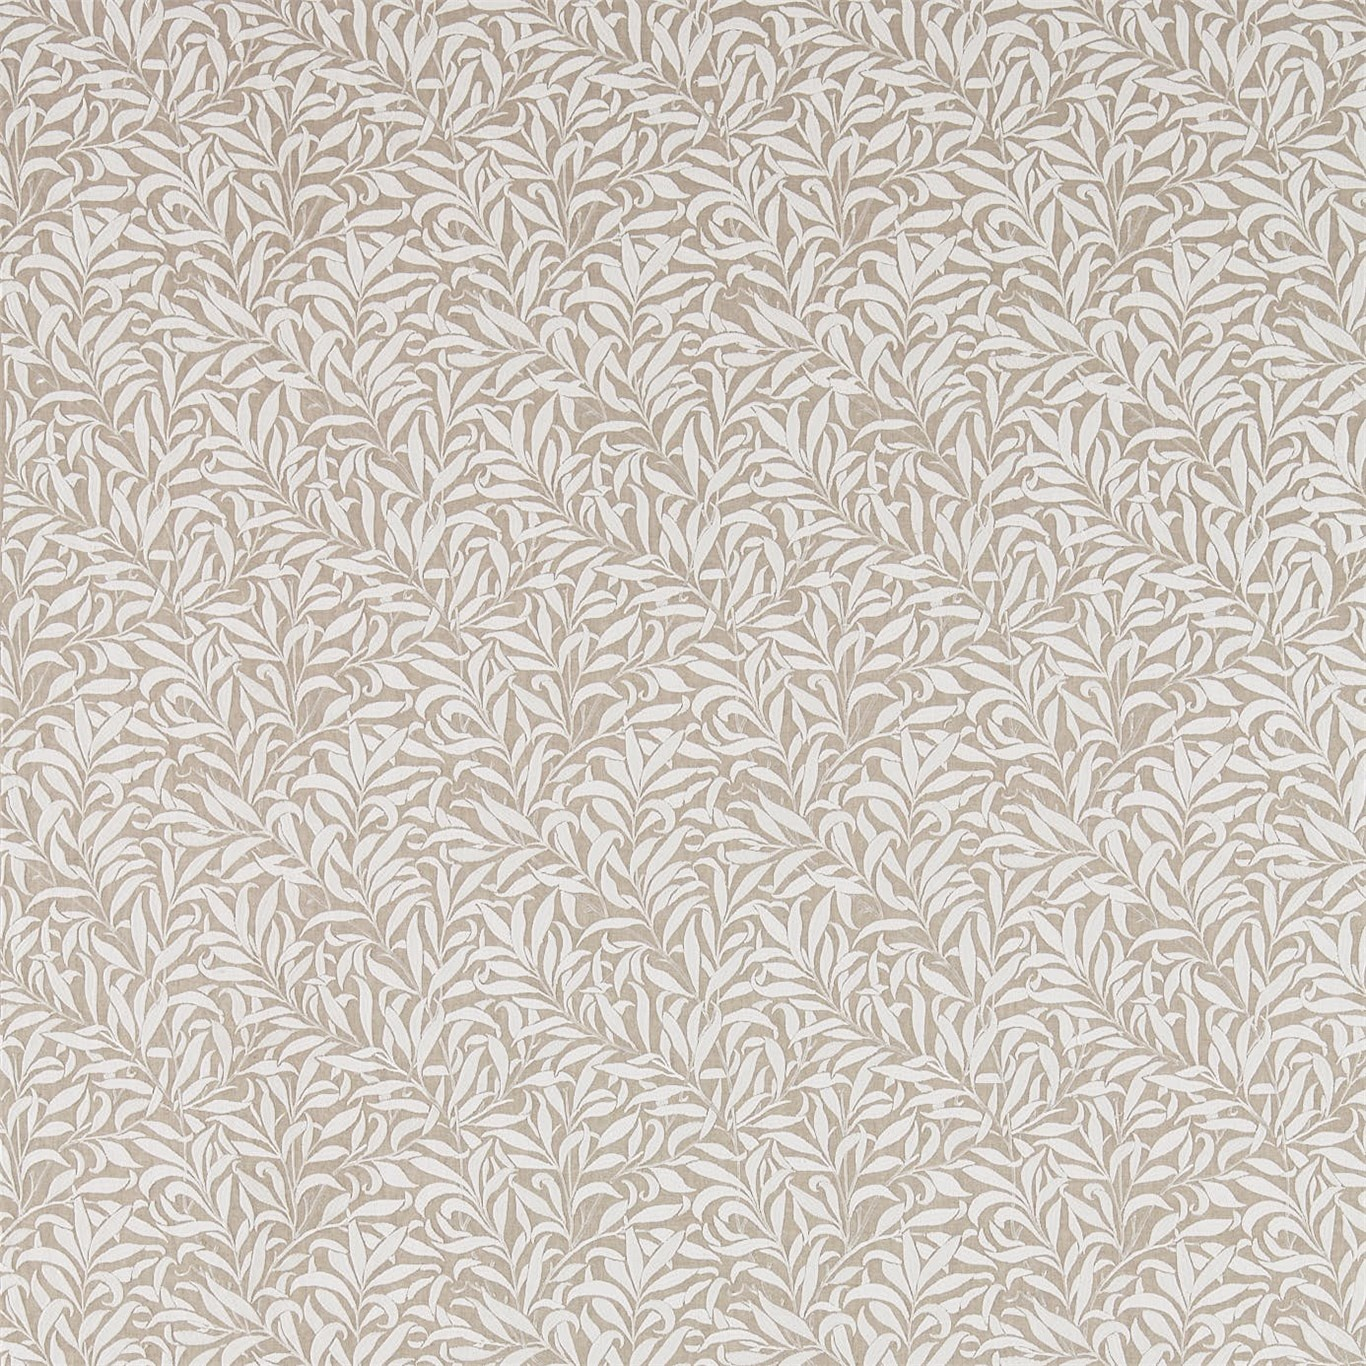 Image of Morris & Co Pure Willow Bough Embroidery Flax Fabric 236066